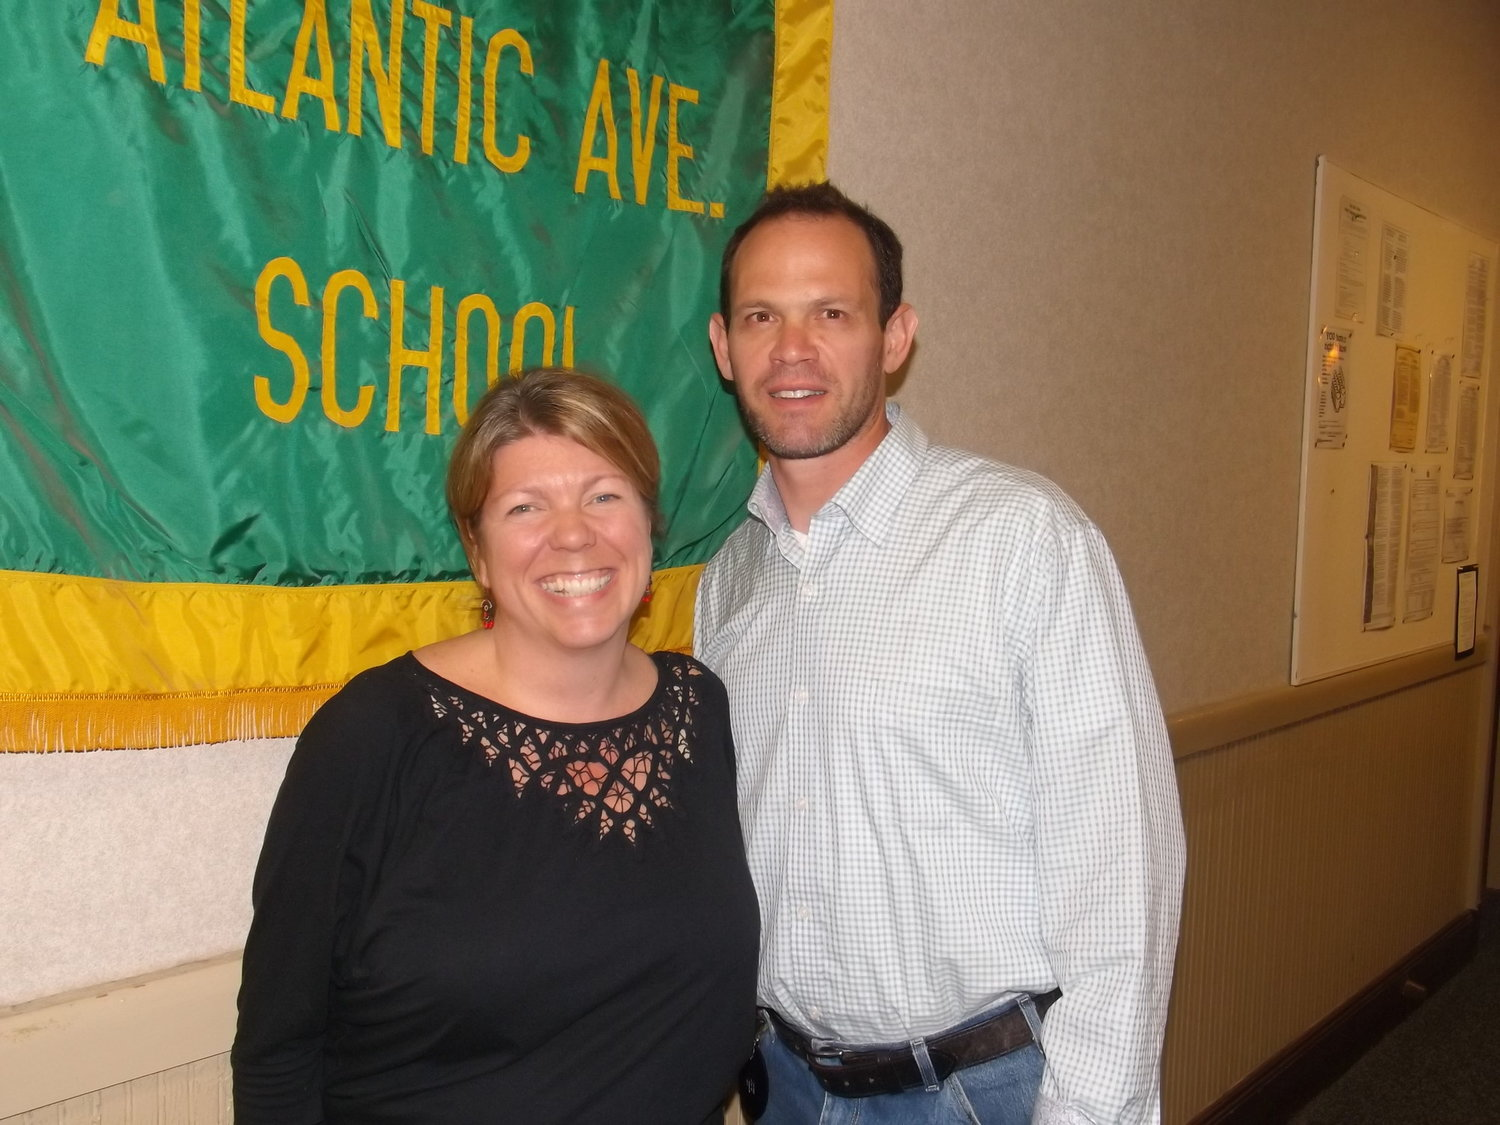 Board of Education Trustee Heather Hanson and President William Belmont are running for re-election to the Lynbrook school board.